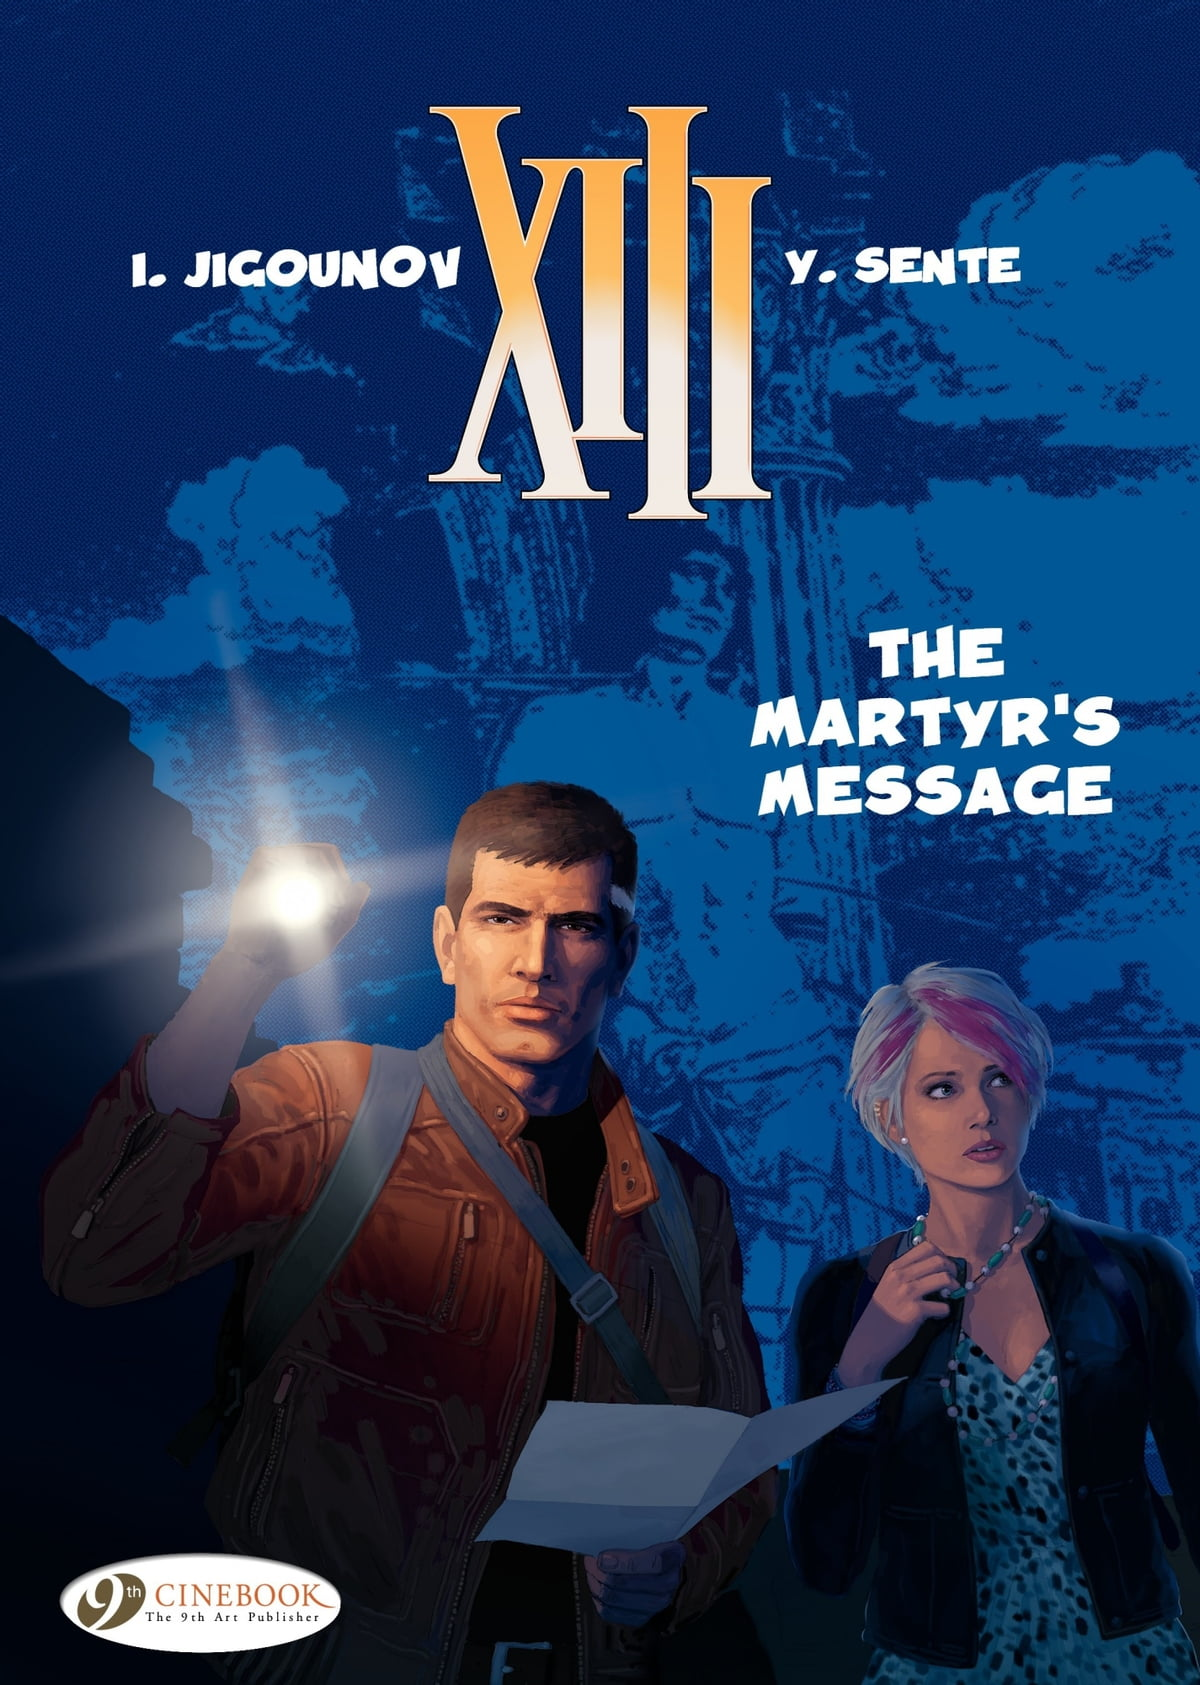 XIII (english version) - Tome 22 - The Martyr's message eBook by Youri  Jigounov - 9781849184694 | Rakuten Kobo